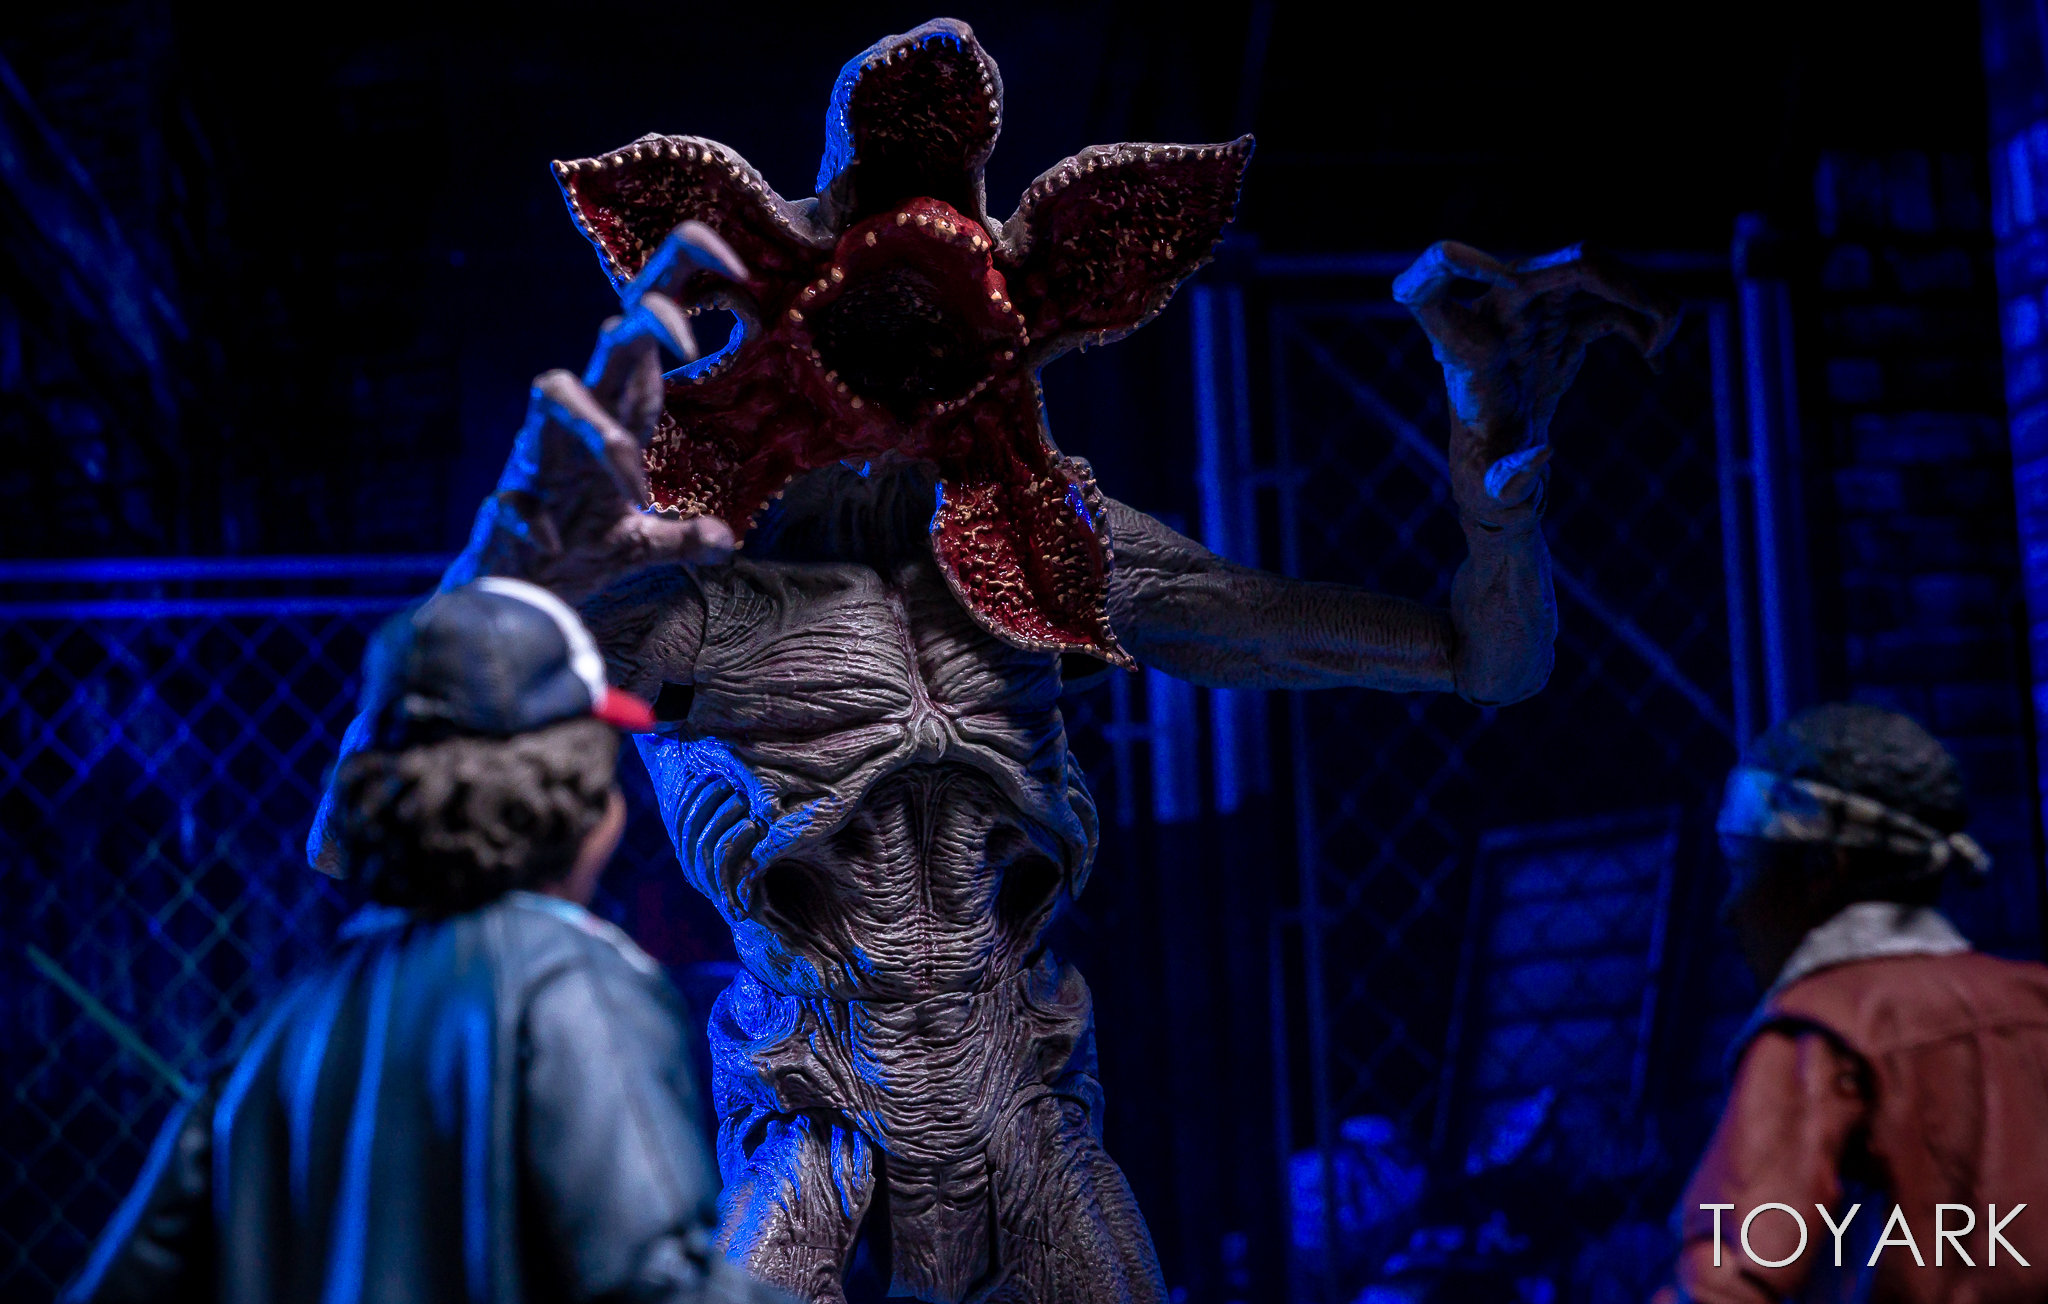 https://news.toyark.com/wp-content/uploads/sites/4/2018/05/Stranger-Things-Figs-by-McFarlane-048.jpg